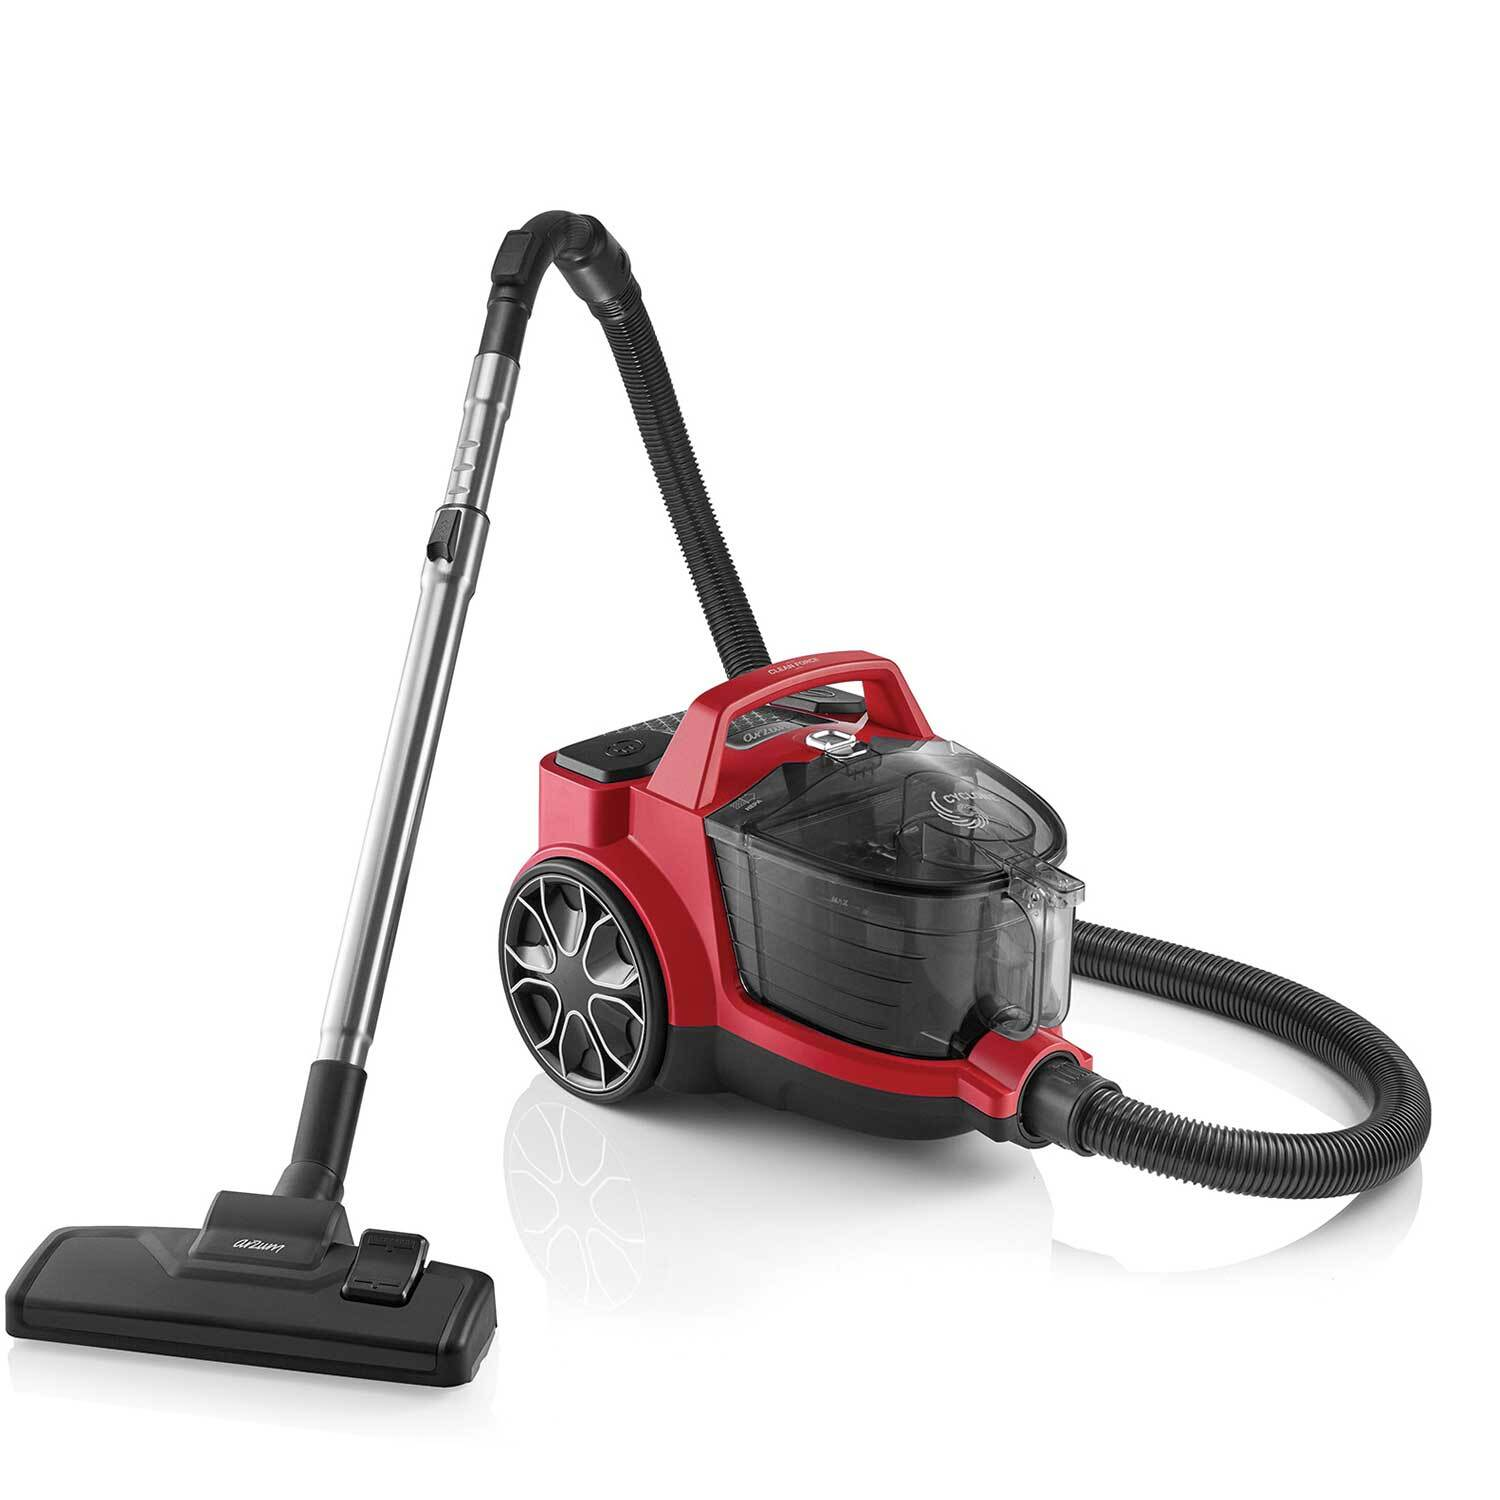 Arzum - AR4071 Clean Force Red Cyclone Filter Vacuum Cleaner - Red